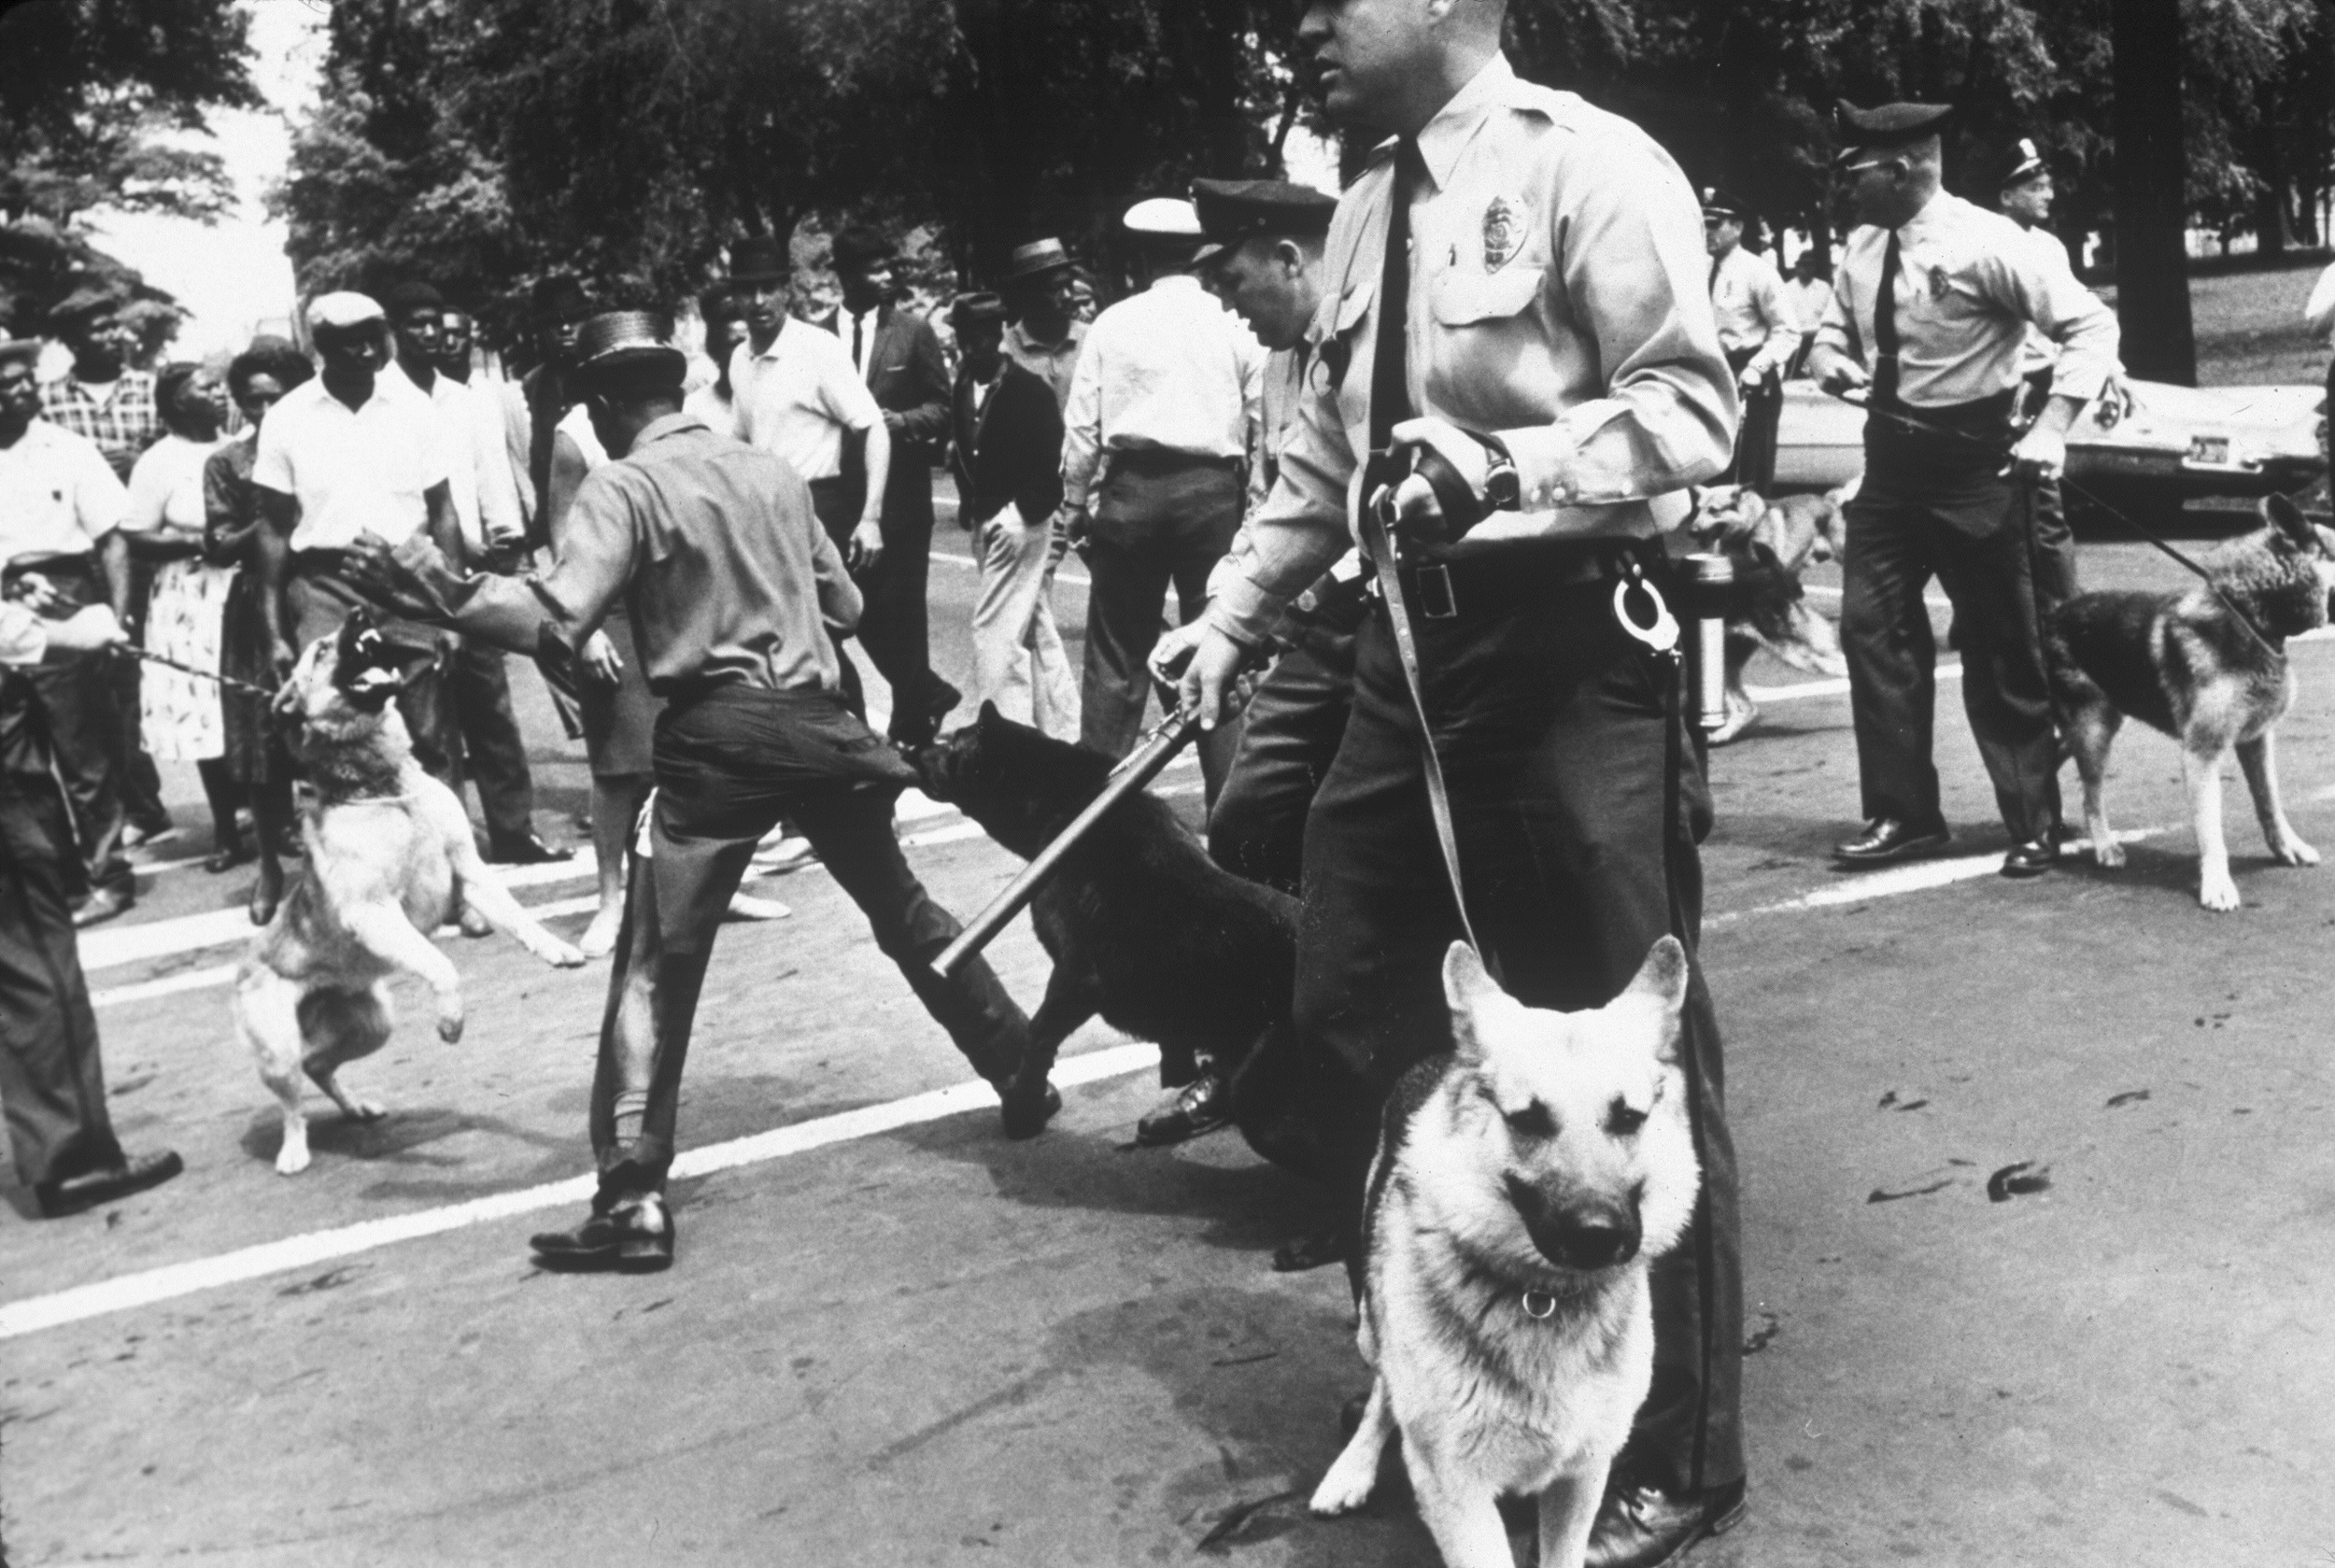 Charles Moore,Police using dogs to attack civil rights demonstrators, Birmingham, Alabama (1963),Gelatin silver print, image 8 1/4 x 12 1/4 inches